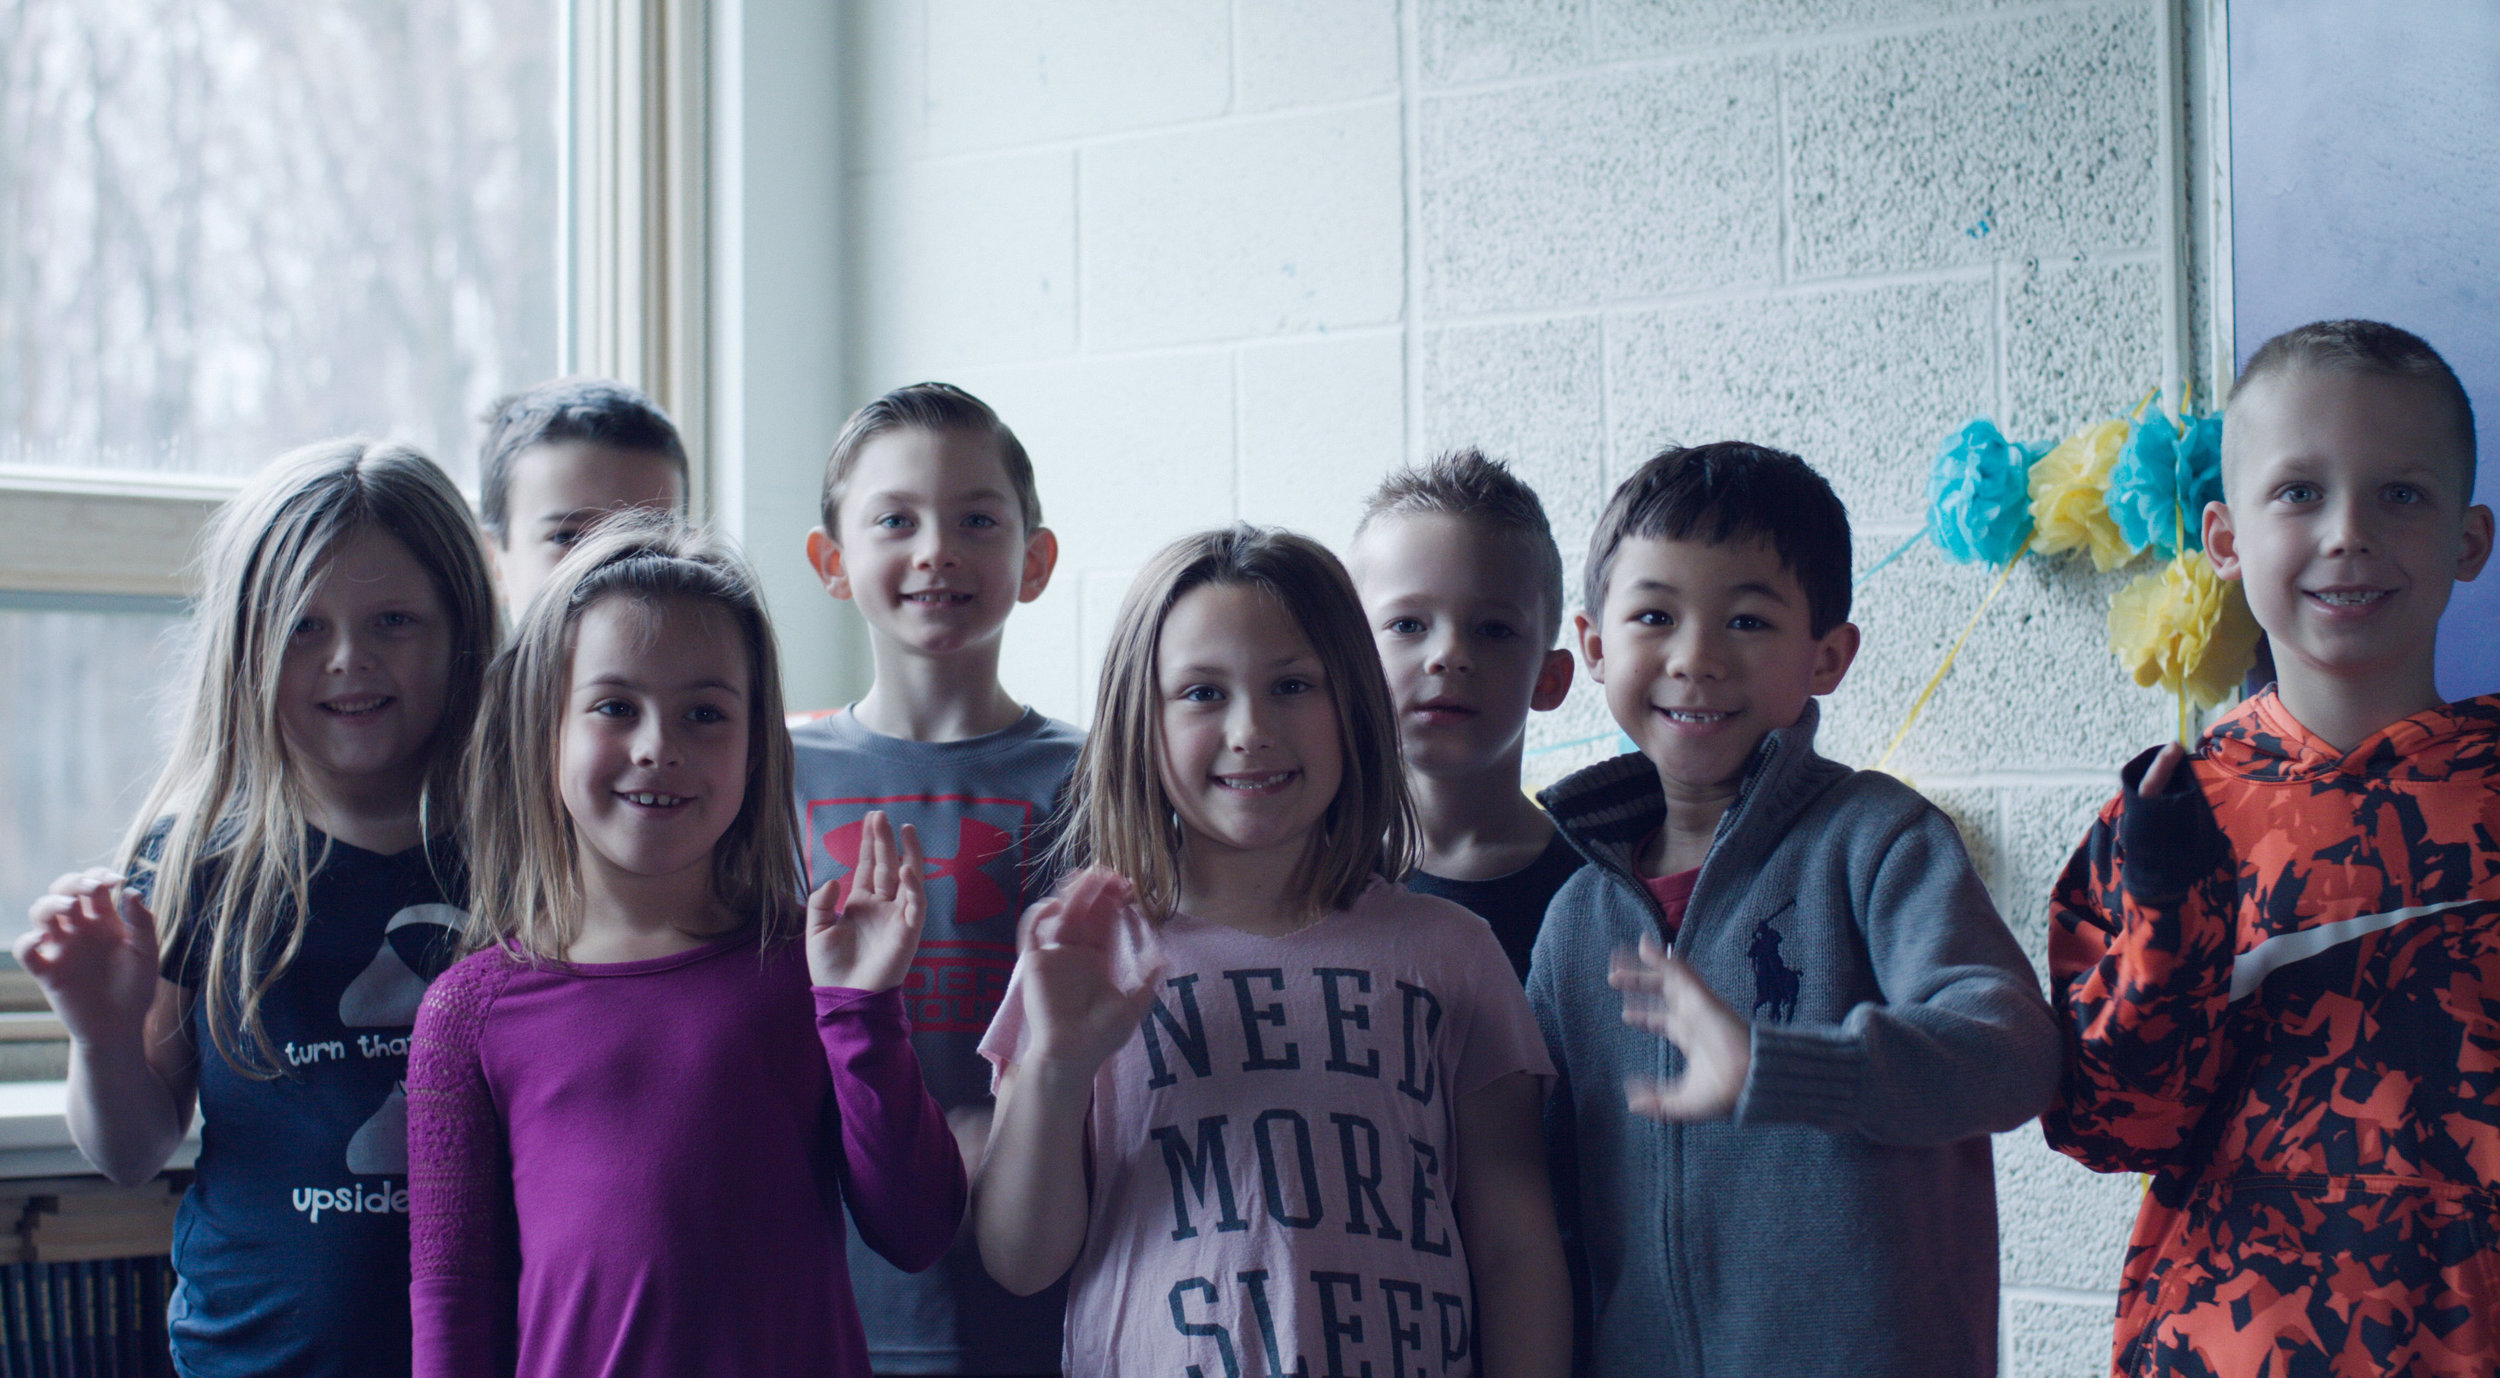 First graders at CH Campbell Elementary in Canfield, Ohio